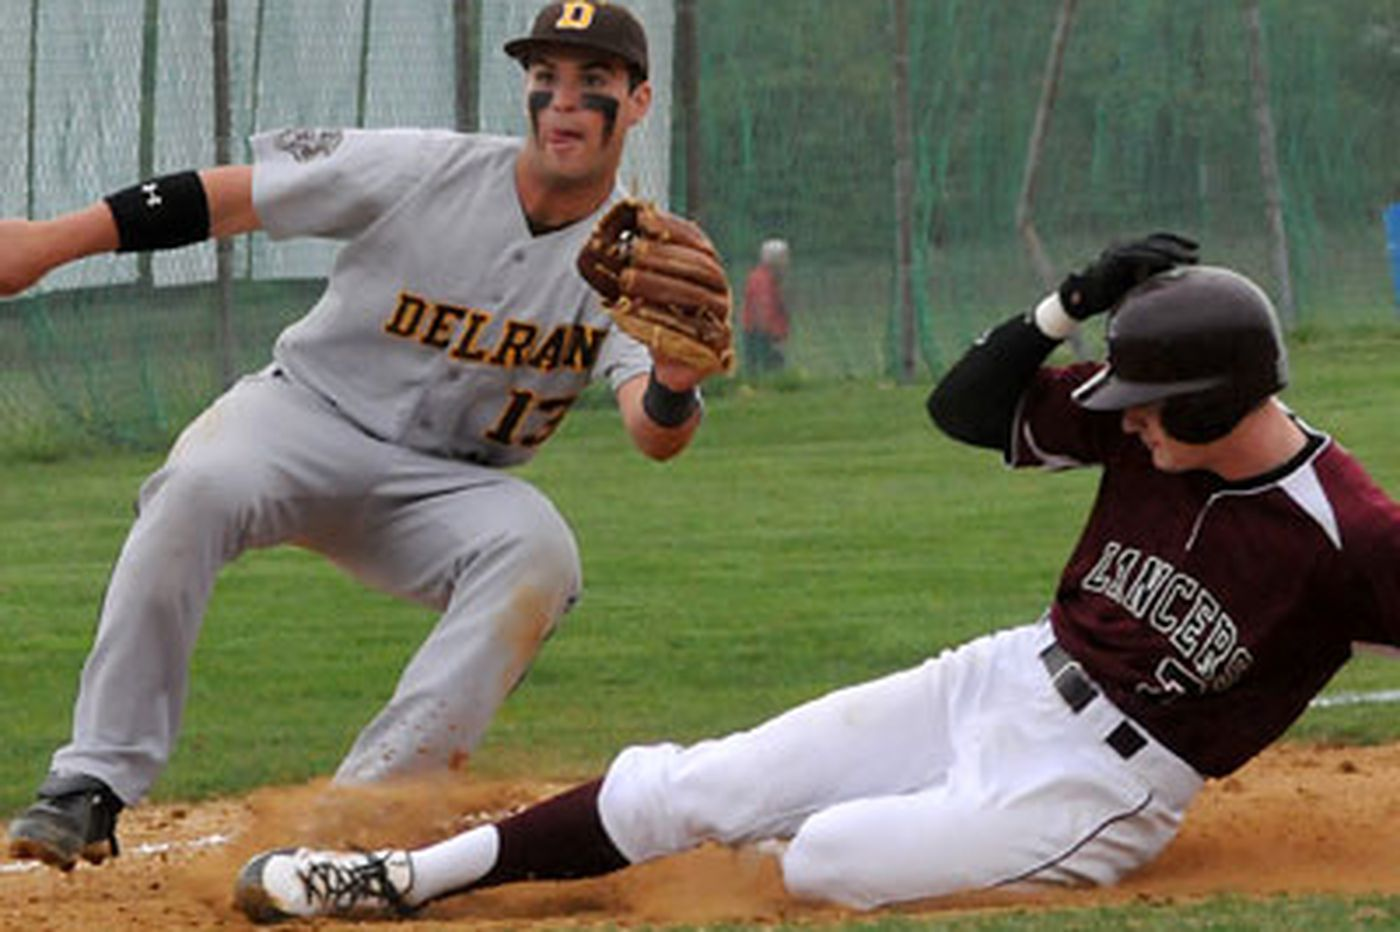 Adryan powers Holy Cross past Delran